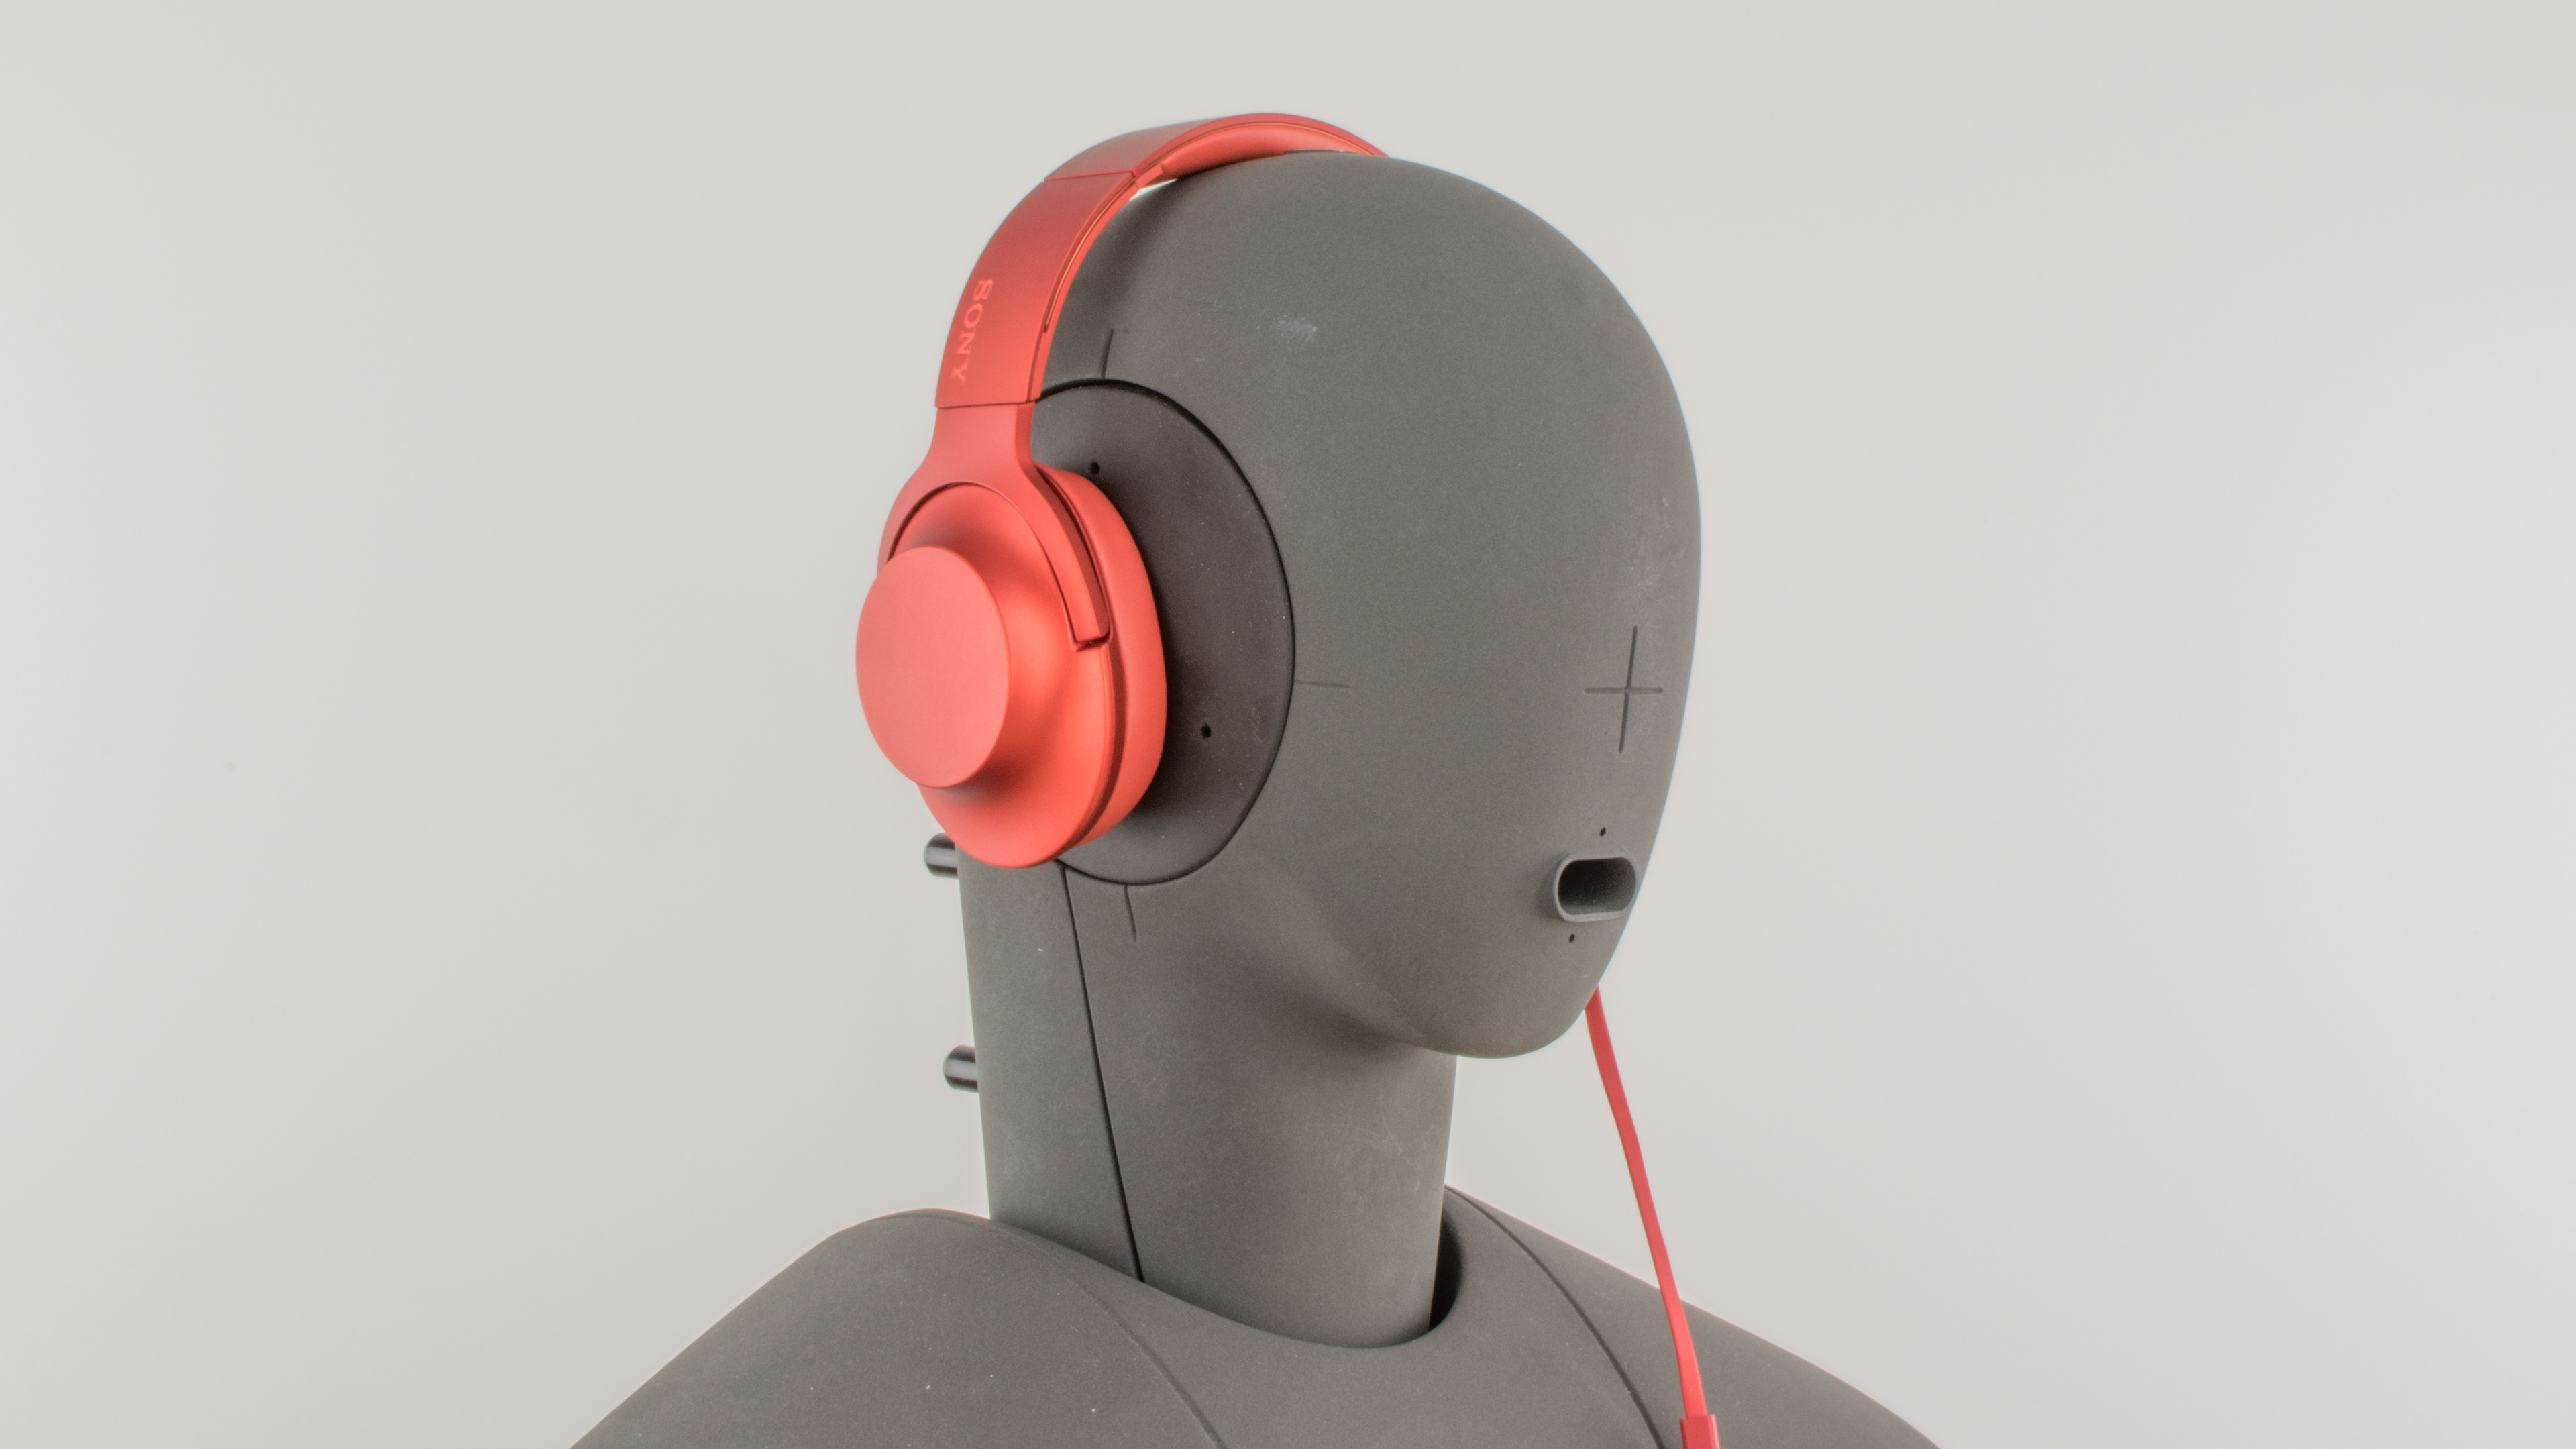 Sony Mdr 100aap Mdr100aap Hear On Review Wireless Noice Cancelling Headphone 100abn Blue Angled Picture